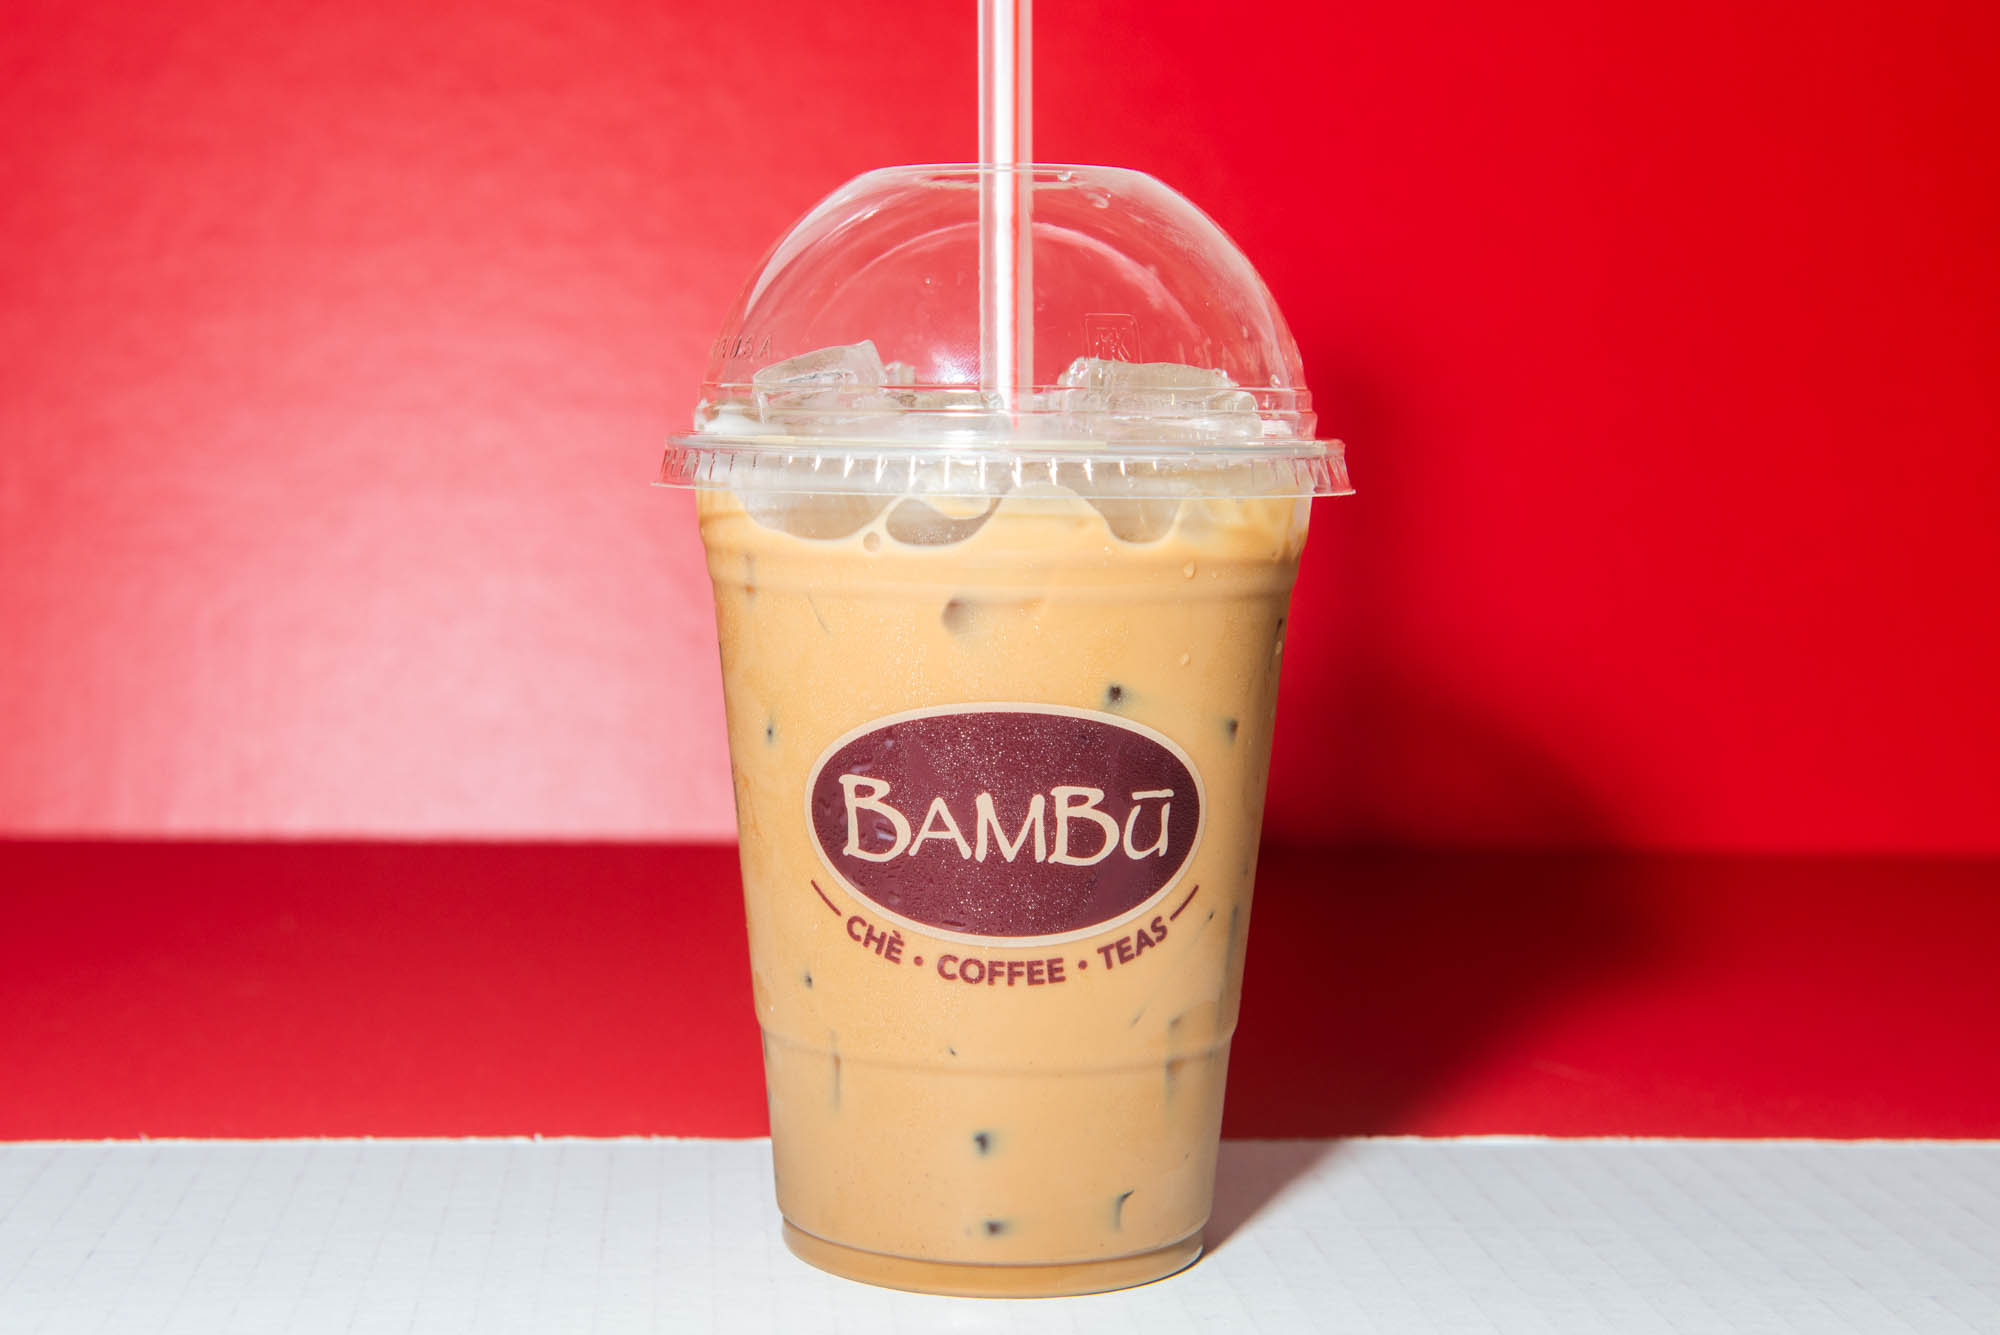 Located on 7th between James and Lane, BAMBU specializes in sweet drinks. (Image: Chona Kasinger / Seattle Refined)